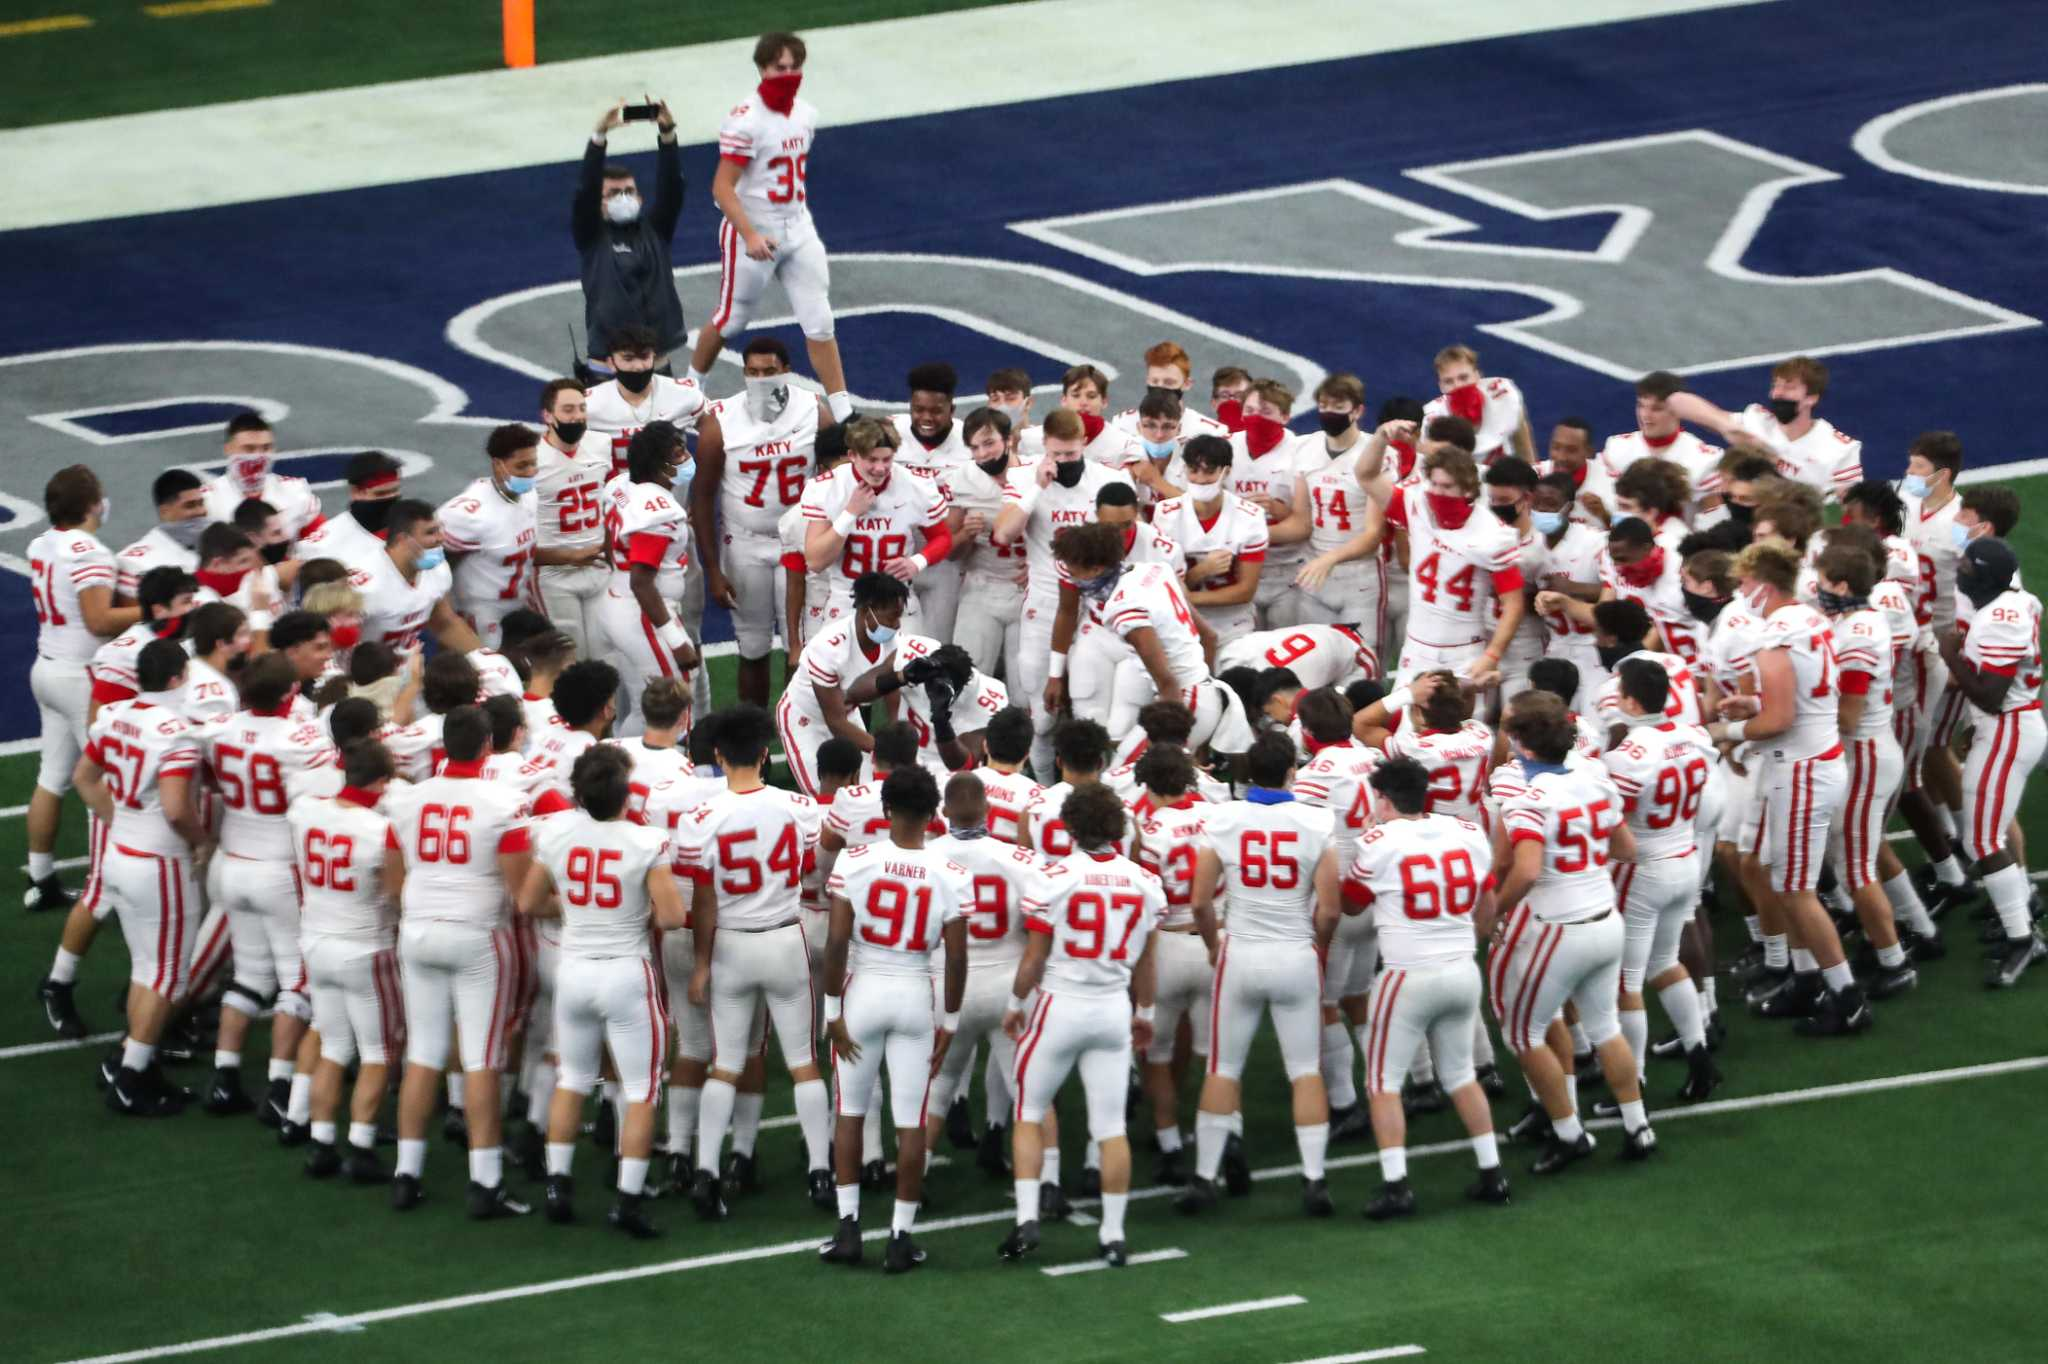 Smith: Just like normal, Katy wins another state championship